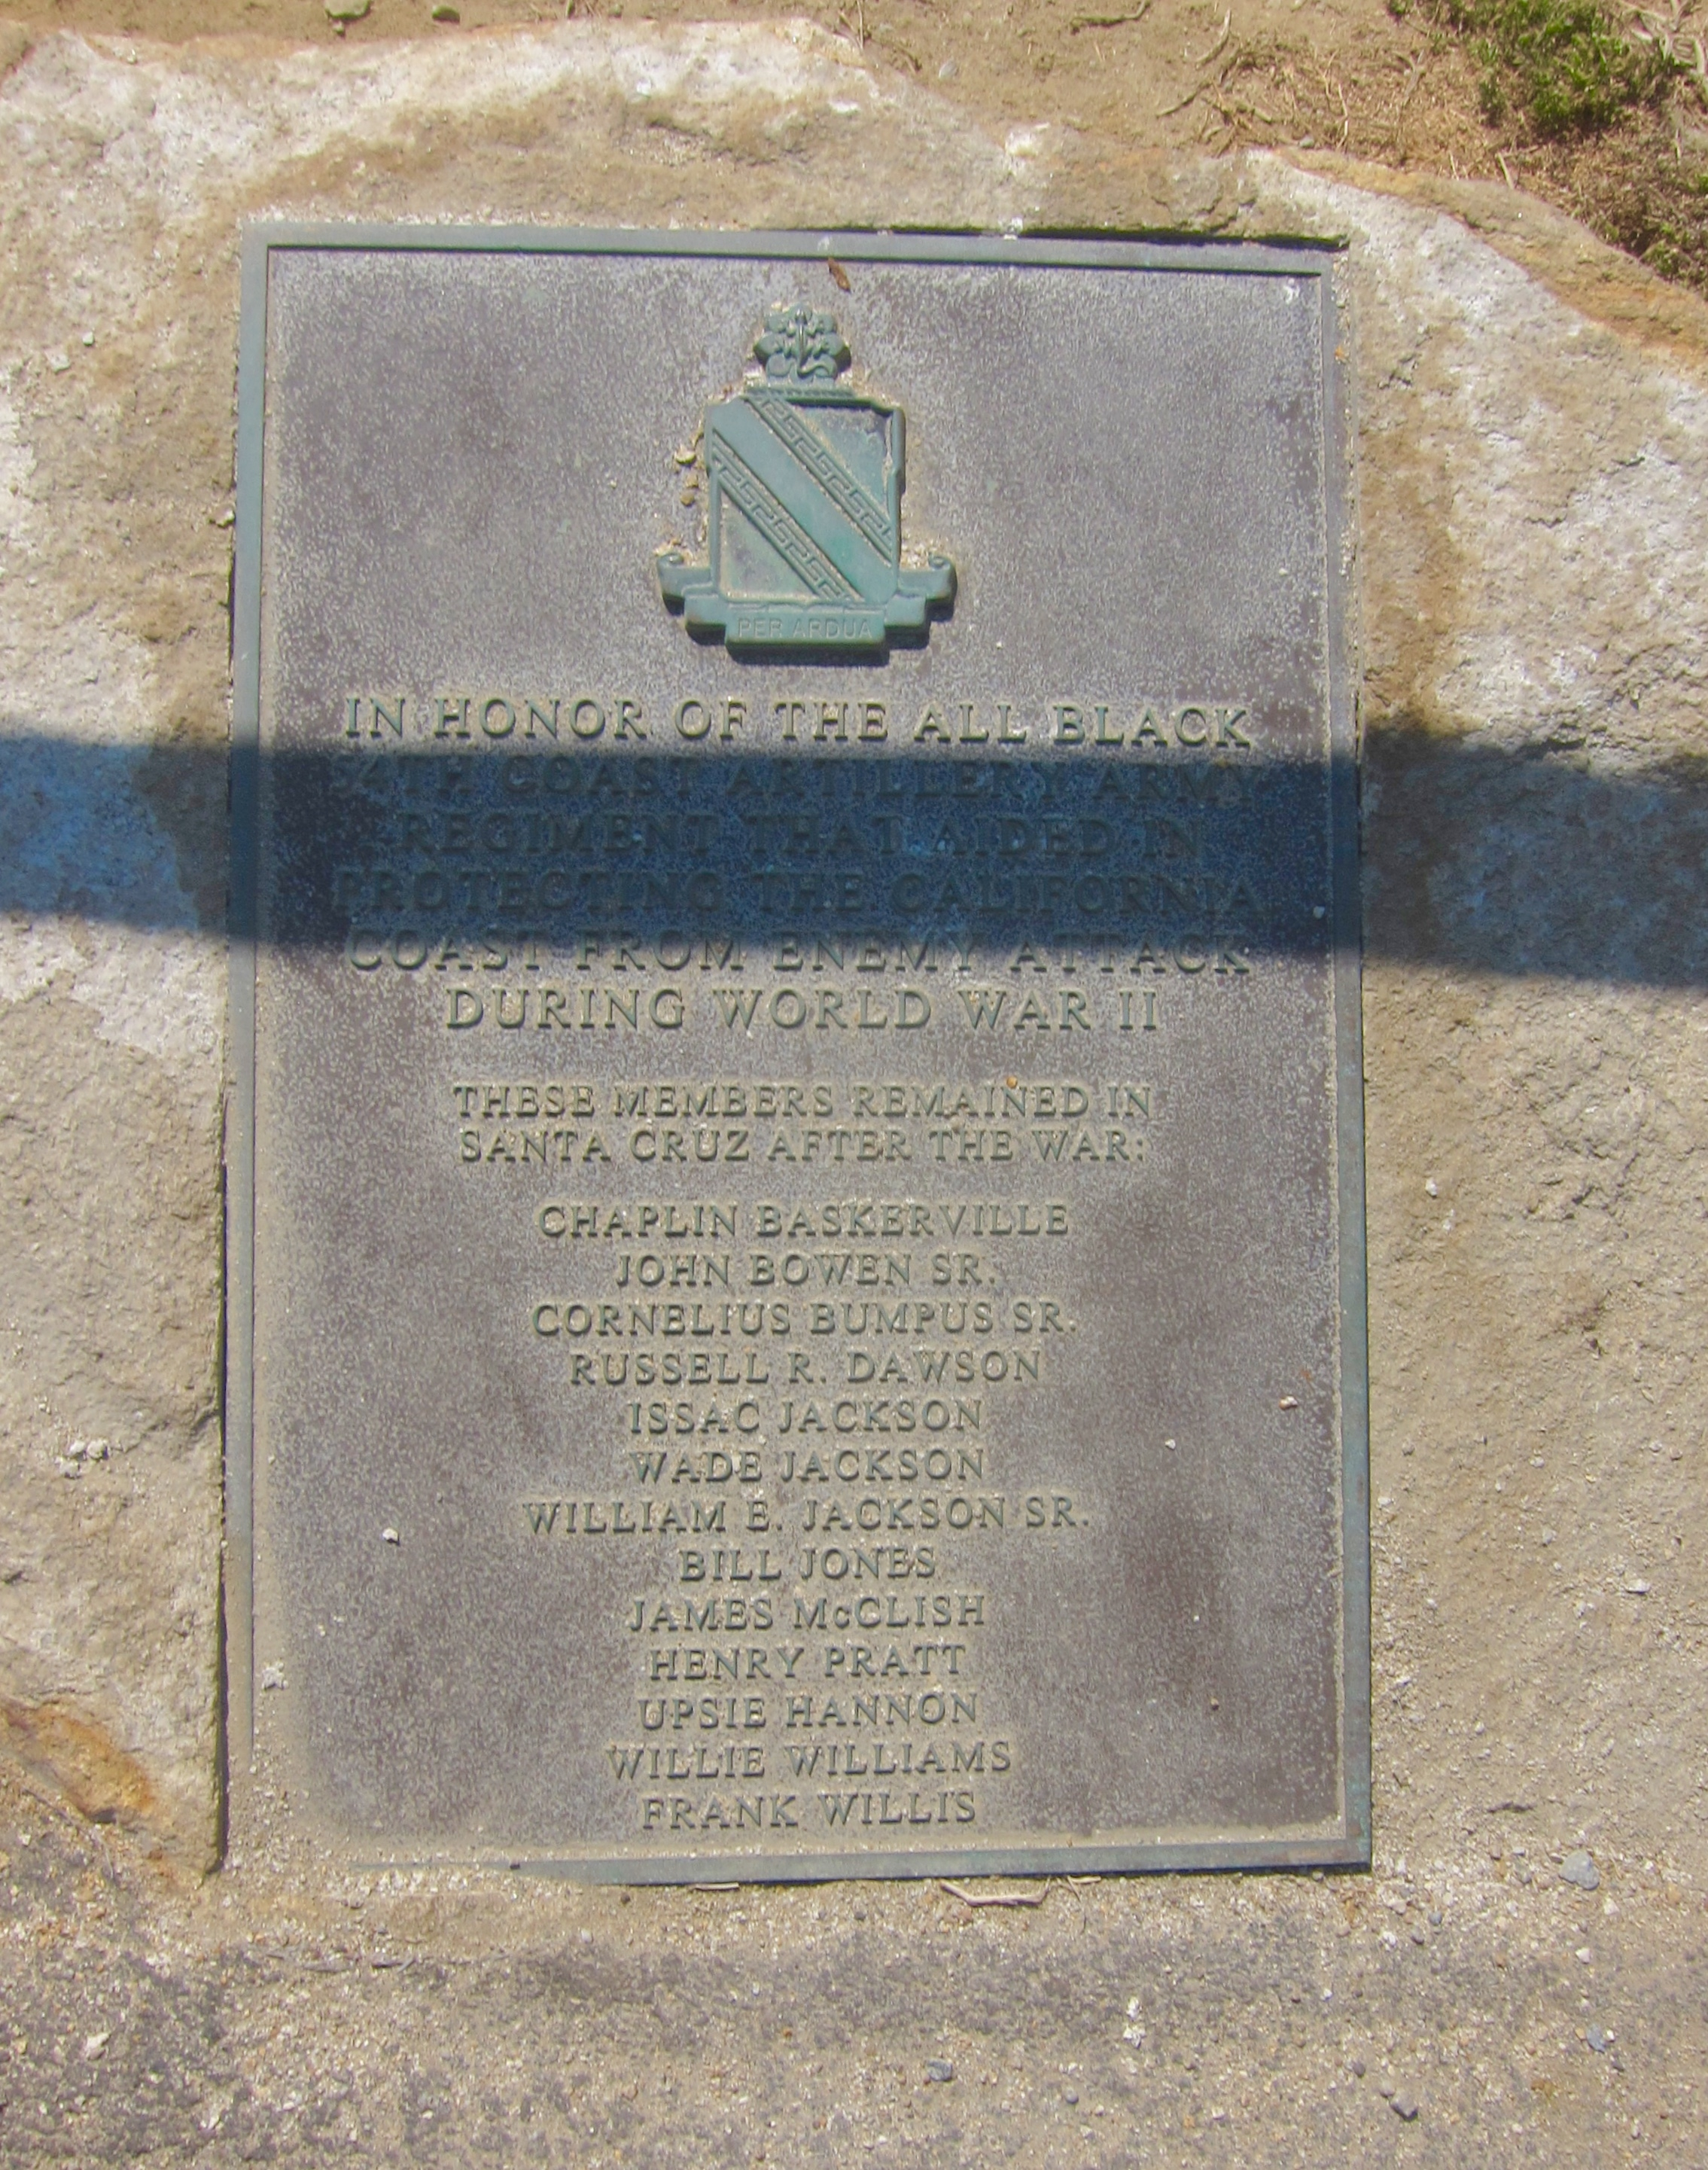 54th Coast Artillery Army Regiment War Memorial Marker